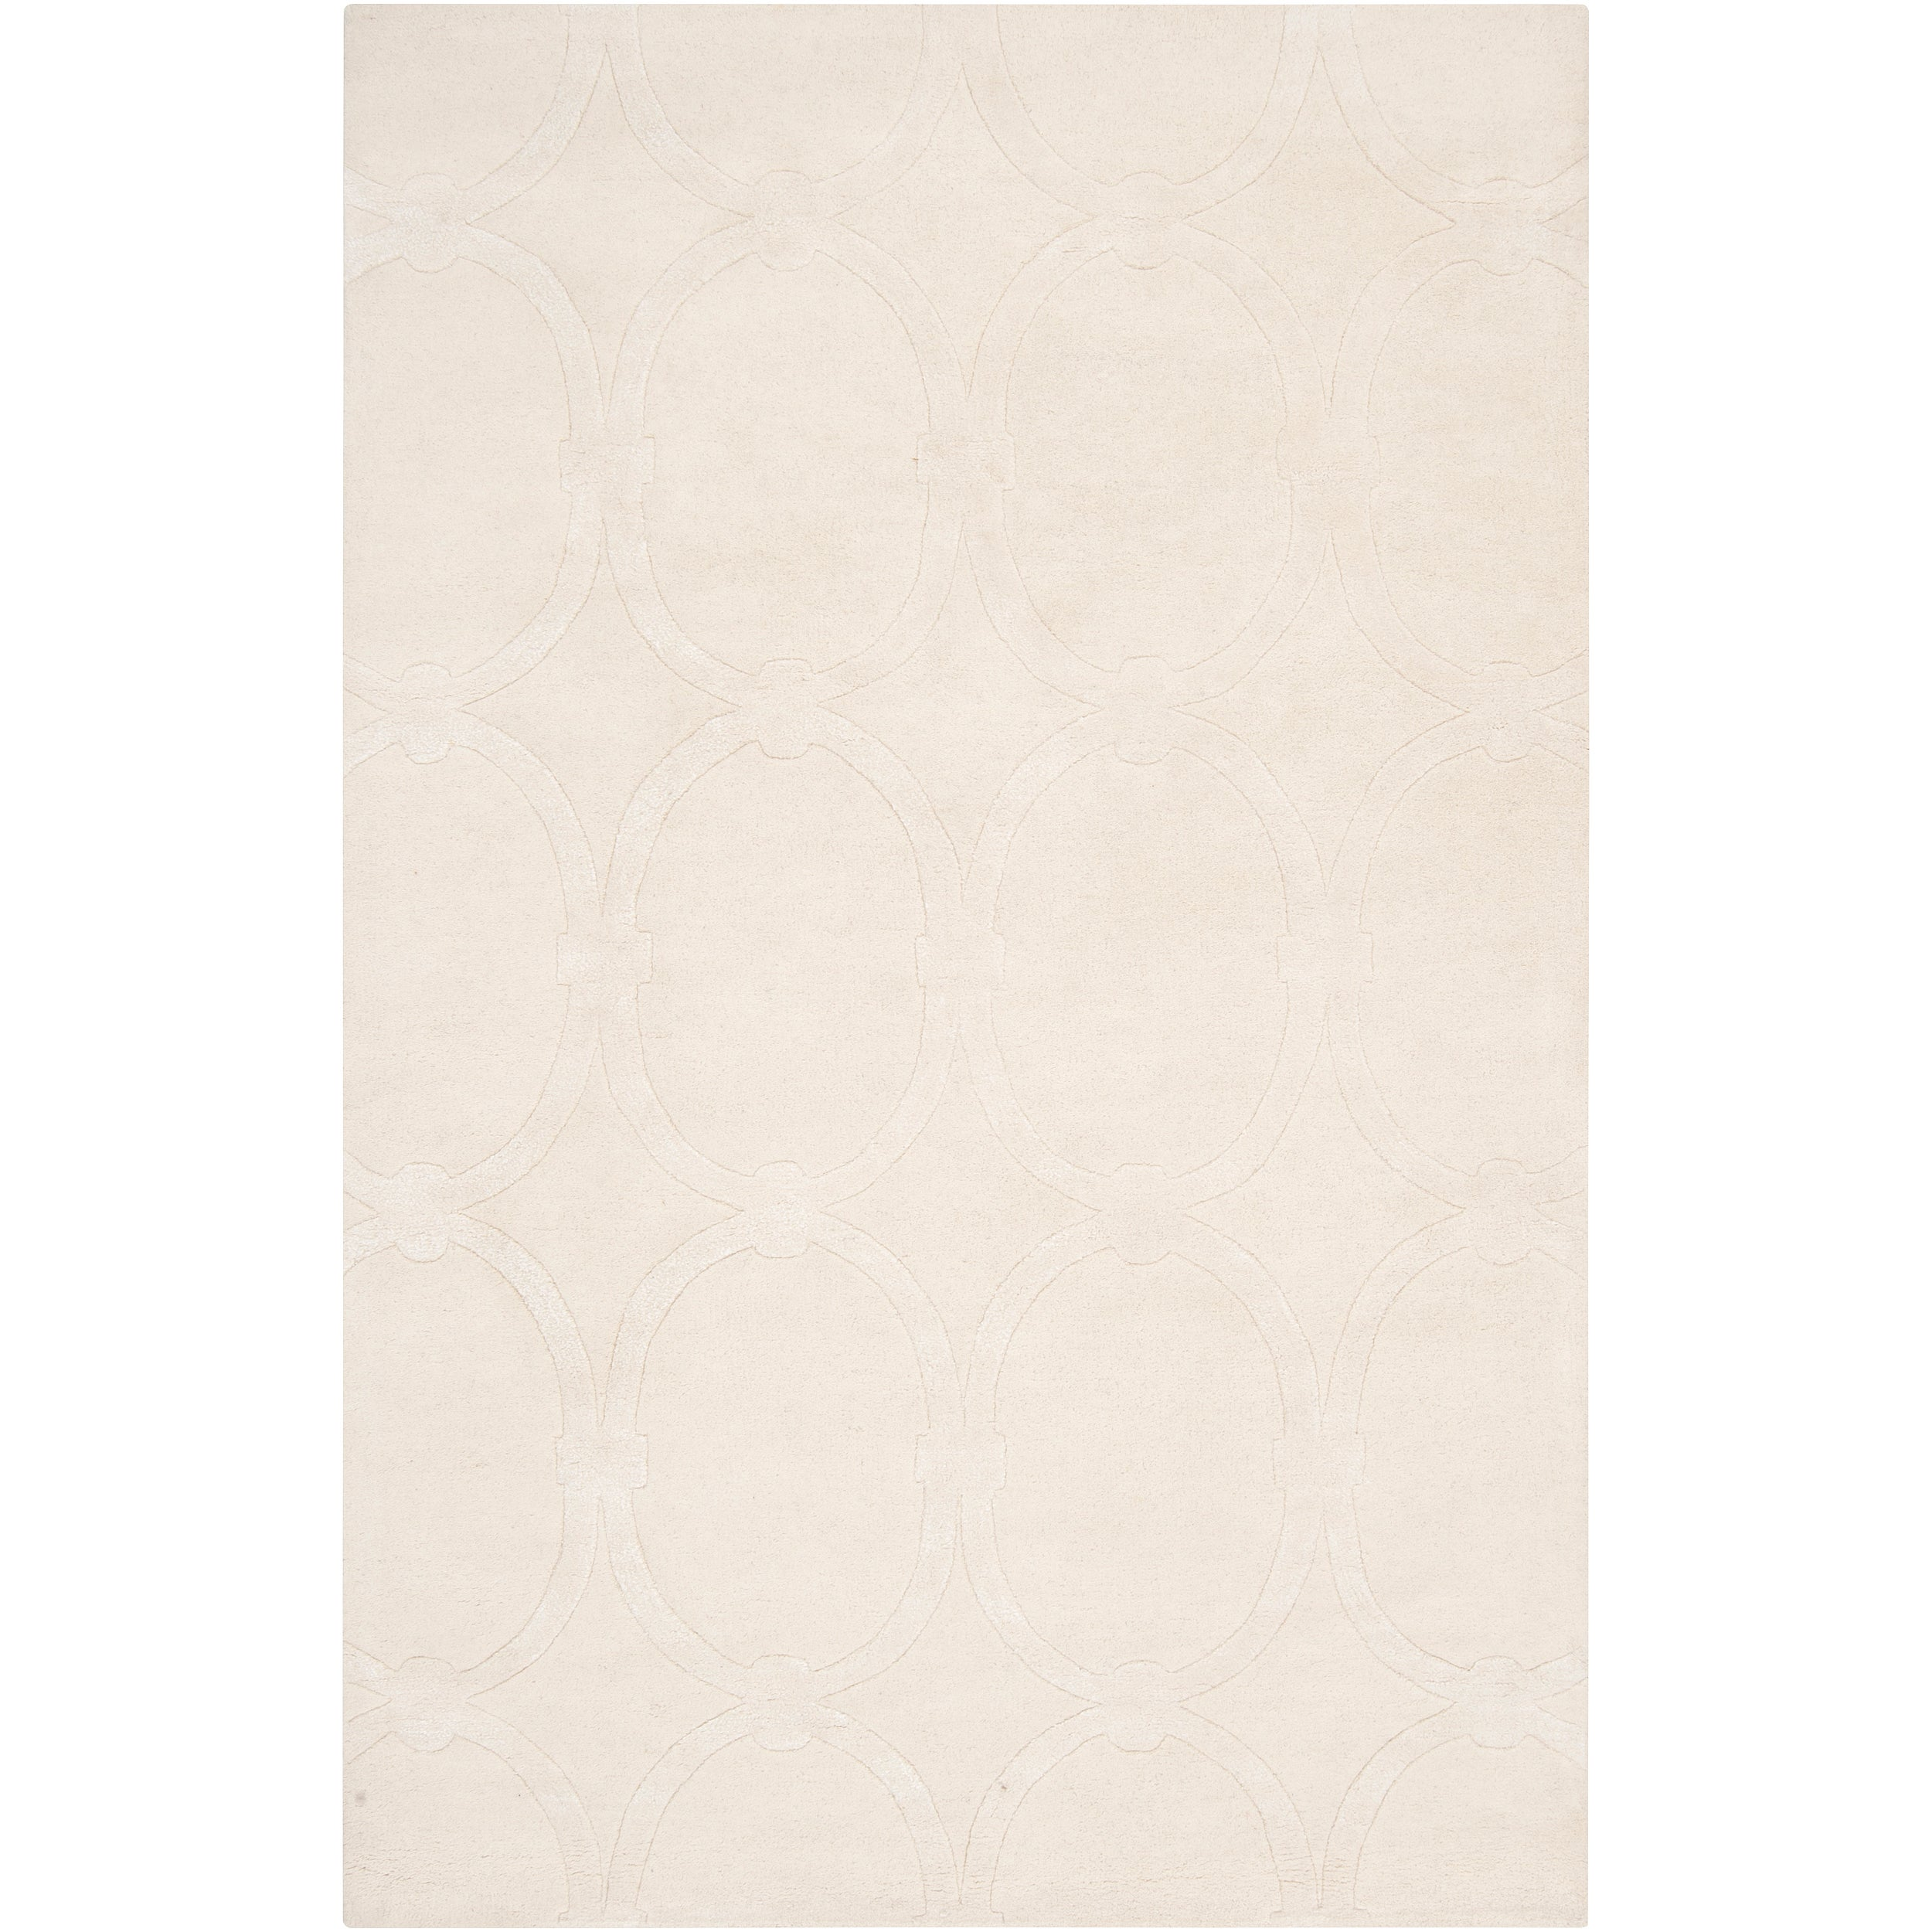 Hand-tufted White Parthenon Trellis Pattern Wool Area Rug (5' x 8')